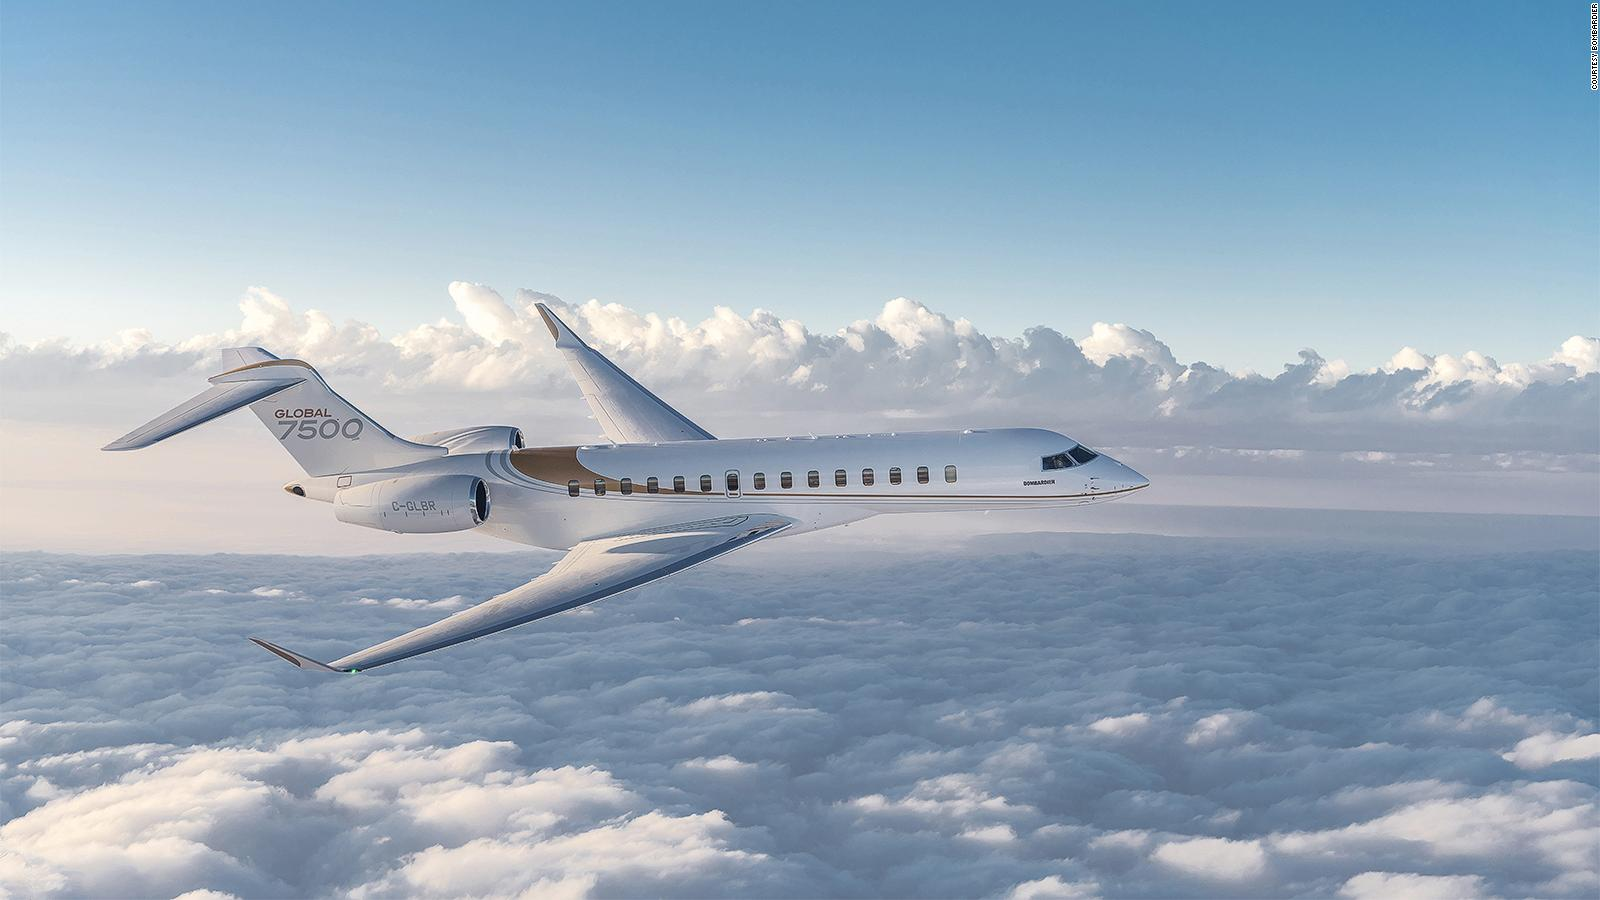 Arr Global 7500 Vs Gulfstream G650 Battle Of The Private Jets Cnn Travel